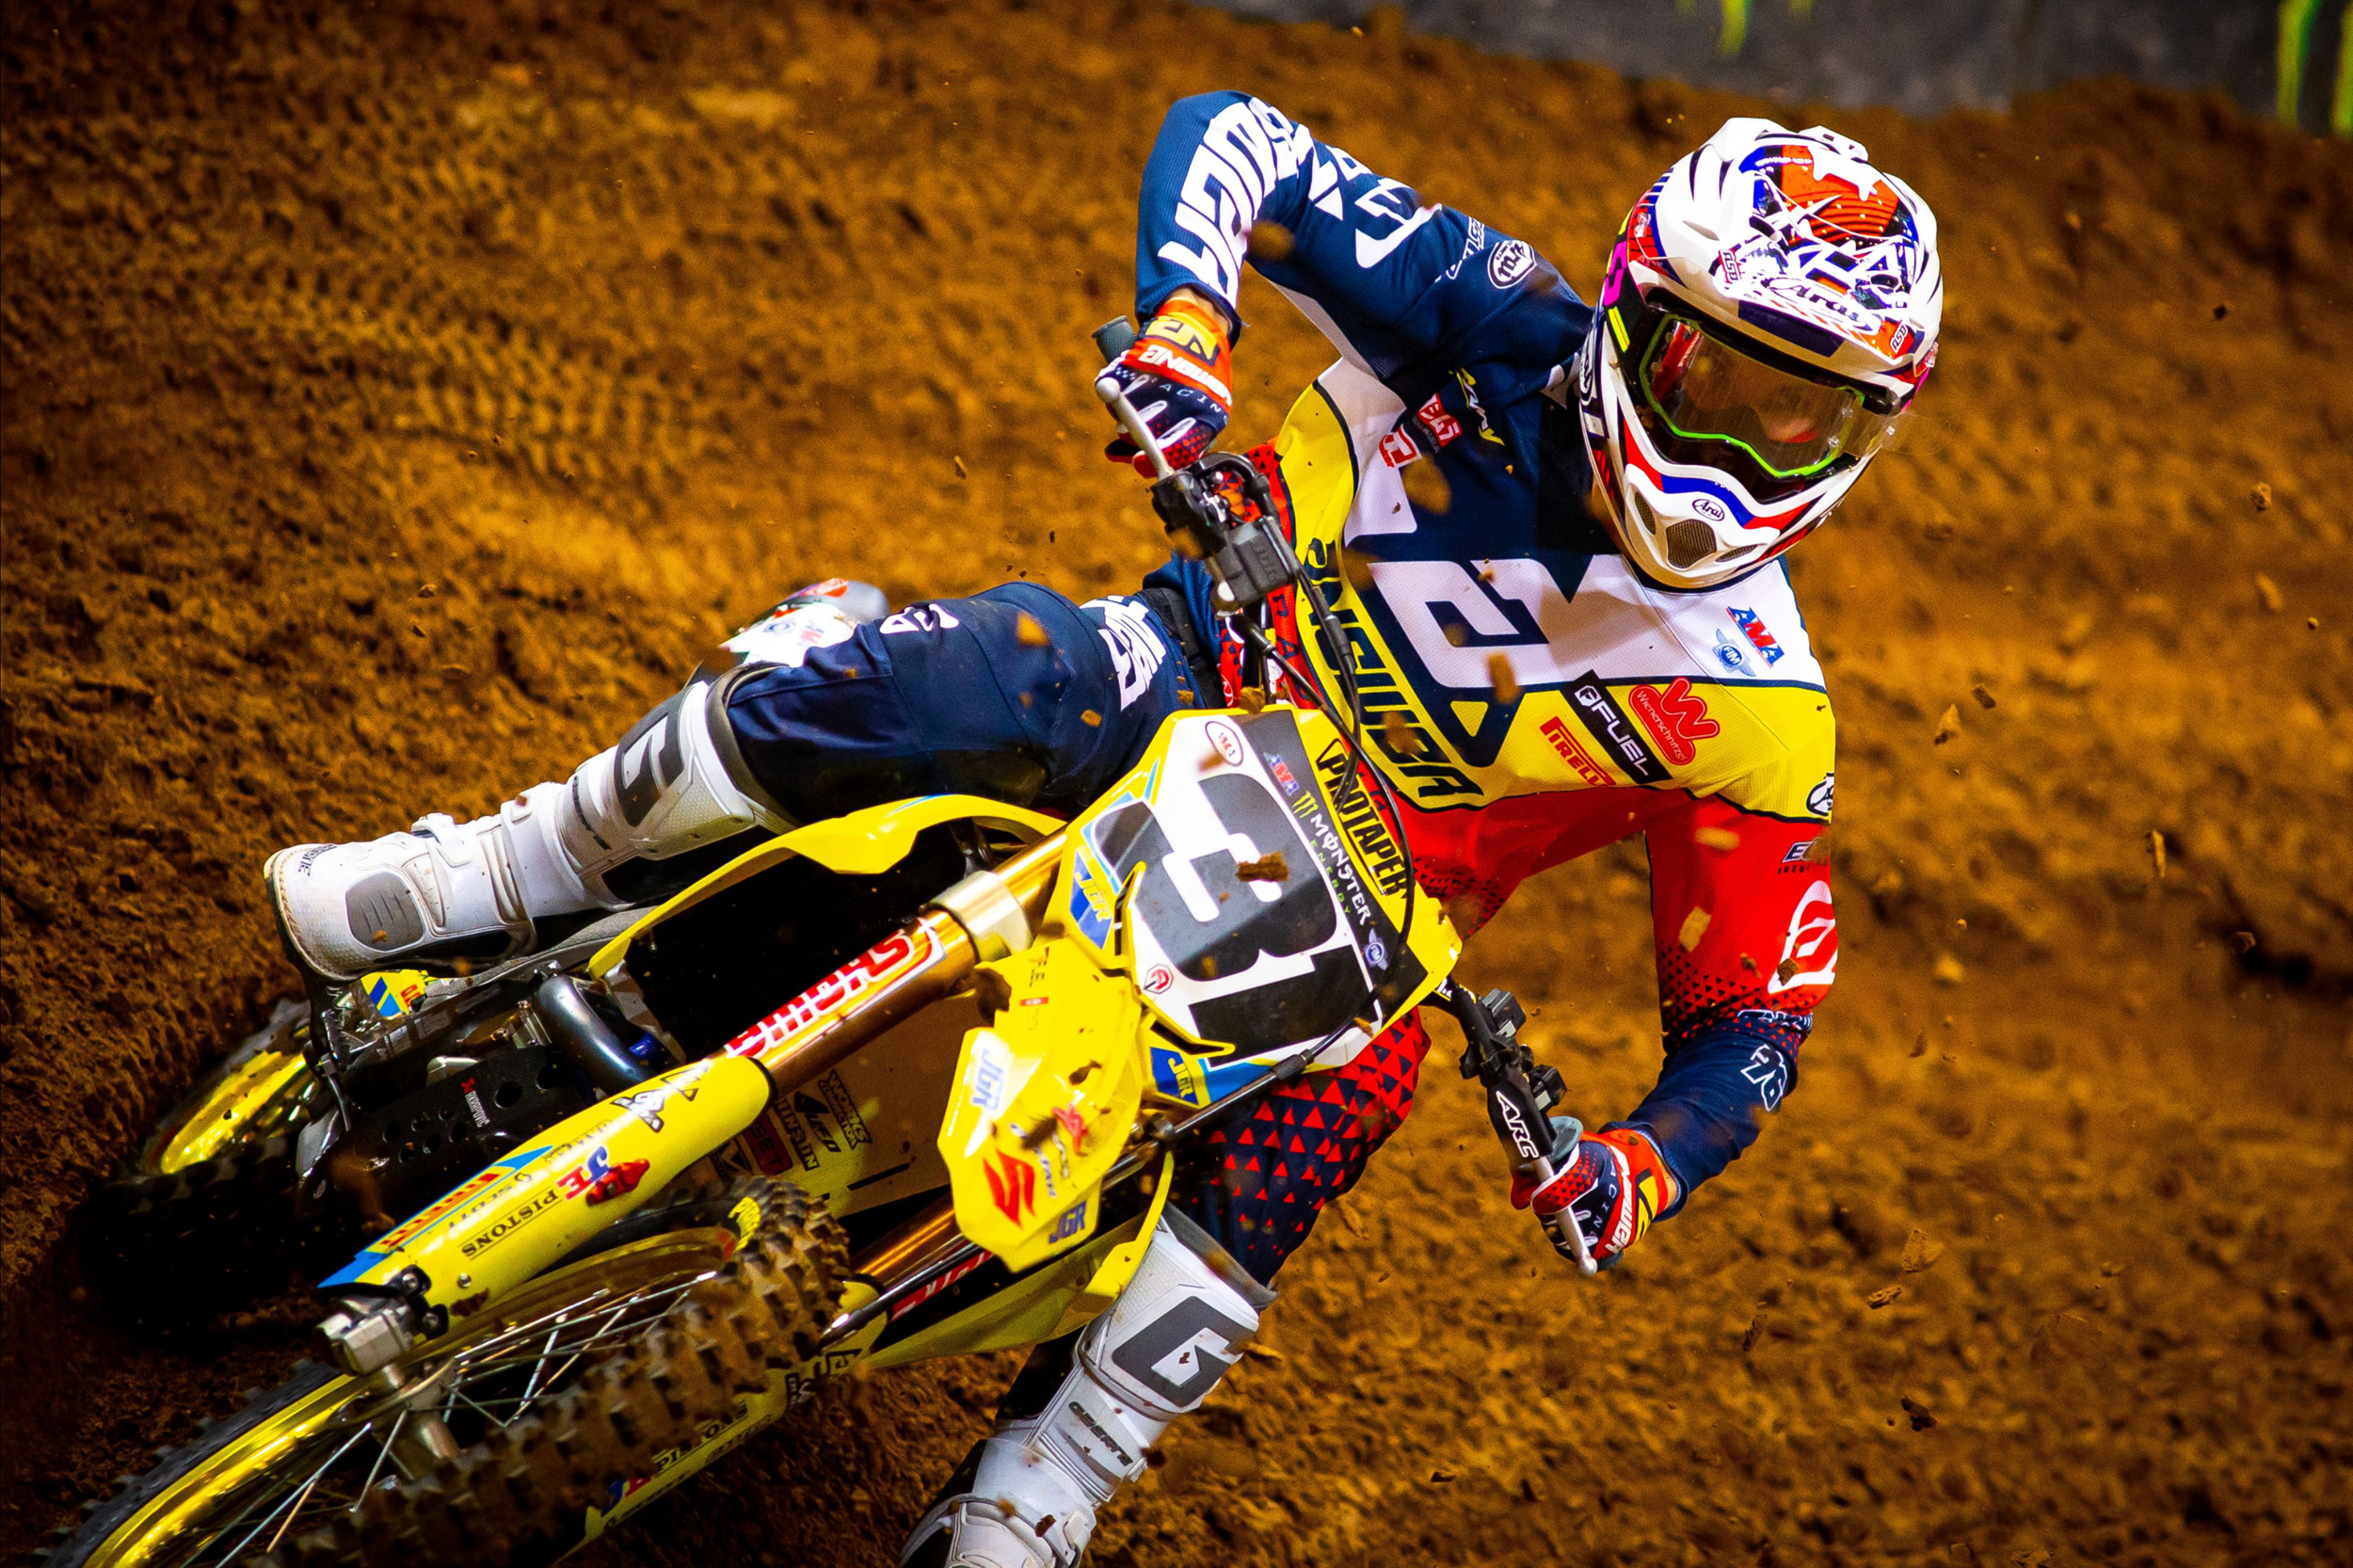 Jimmy Decotis (#31) displayed speed and skill on the rutted Missouri track on his RM-Z450. [2]